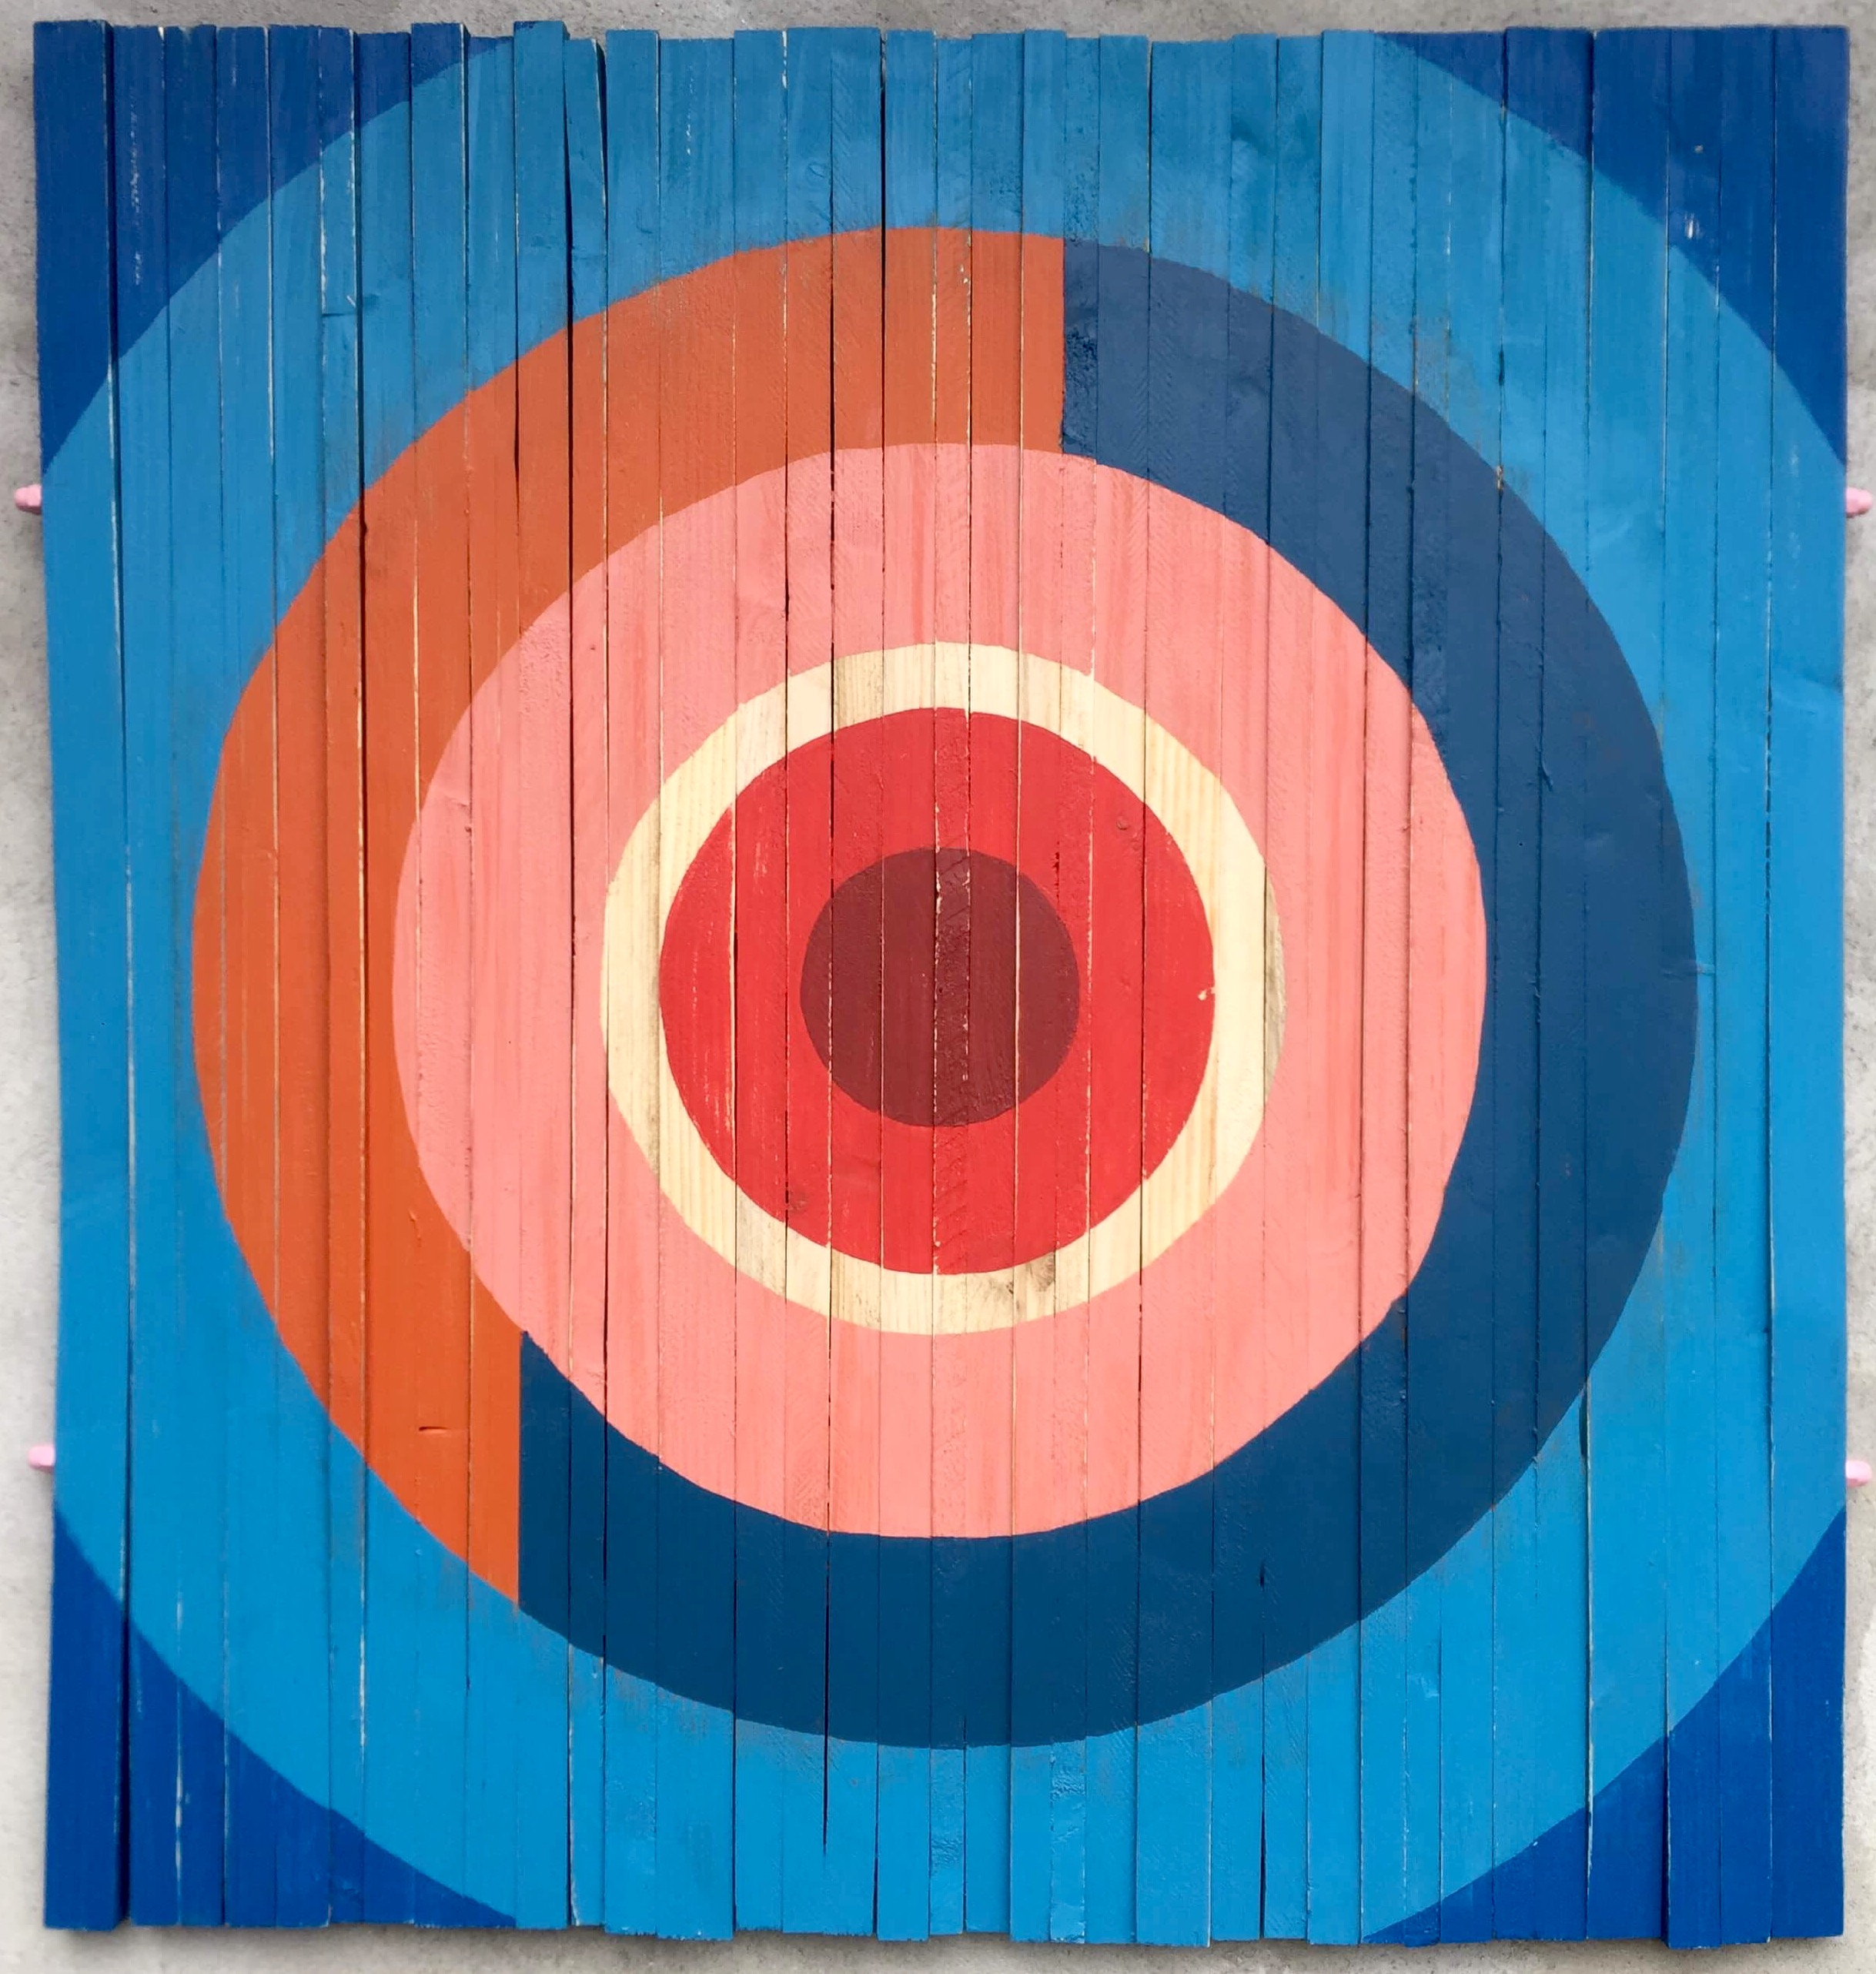 Colour Target. Geometric abstract painting on wood by Henriette Fabricius